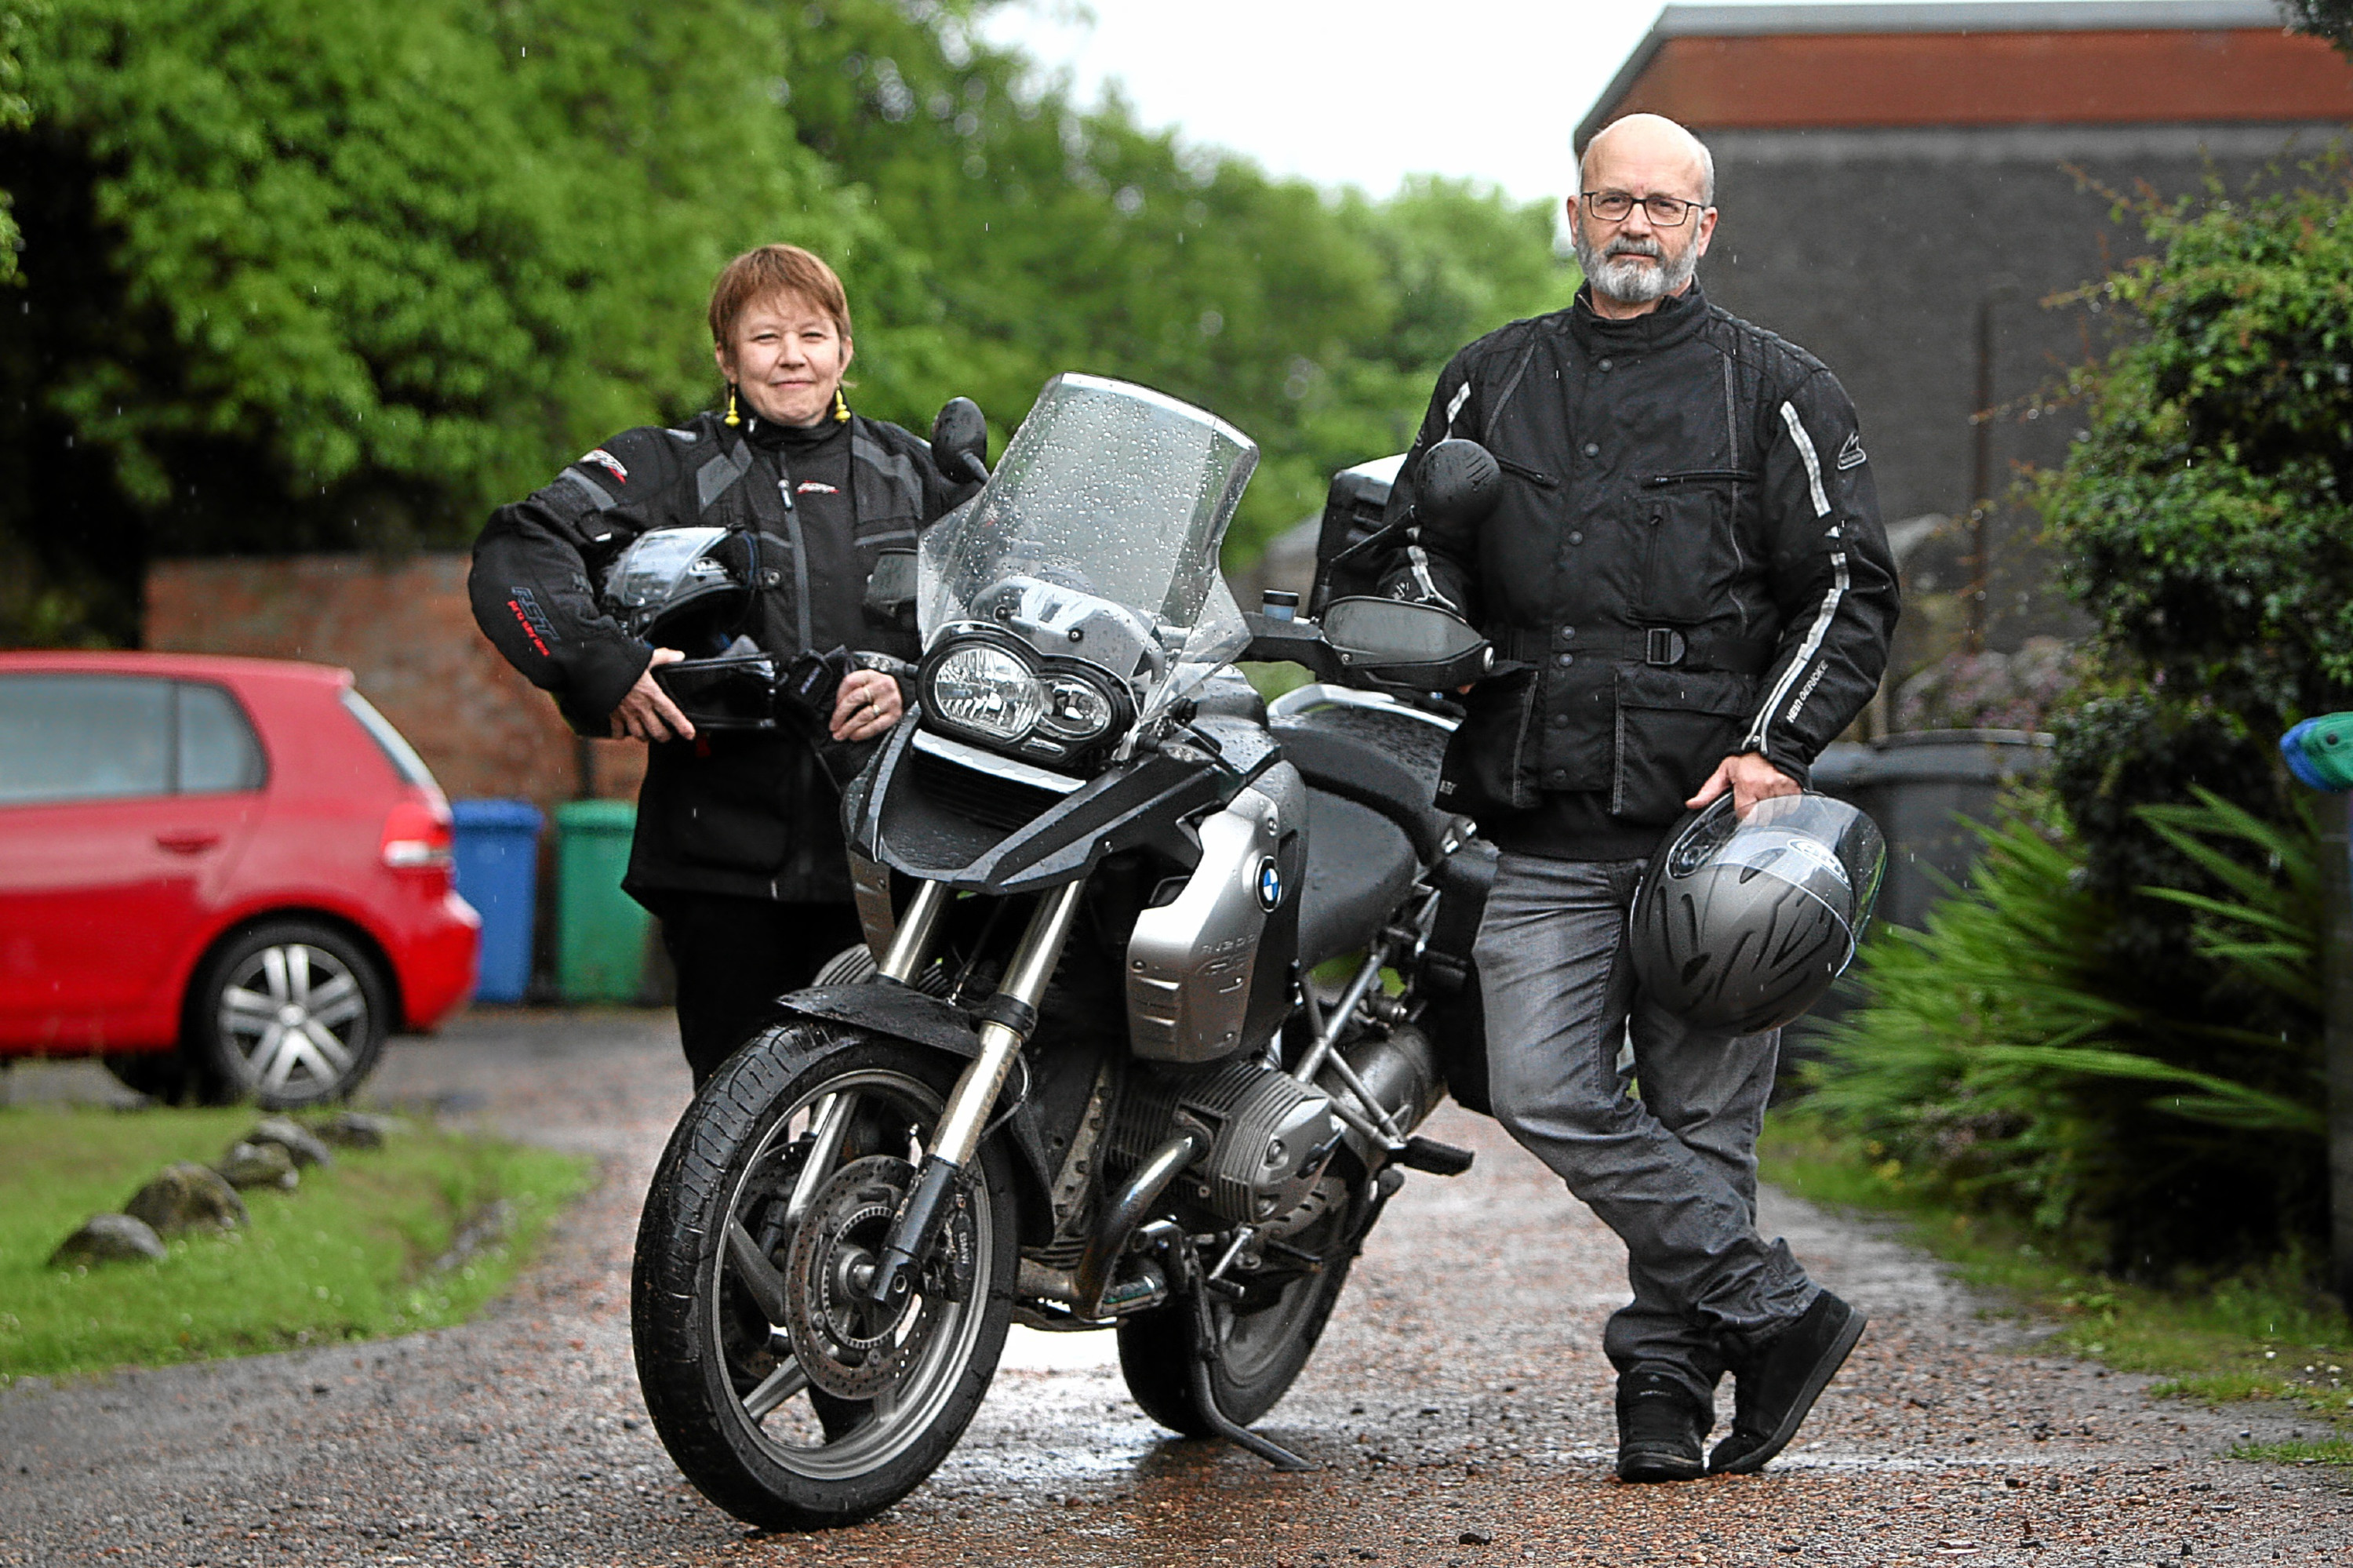 Calum and Liddy Laird, who are setting off on a trip of 1,041 miles to the four corners of Scotland by motorbike to raise funds for the Uphill Trust in Uganda.